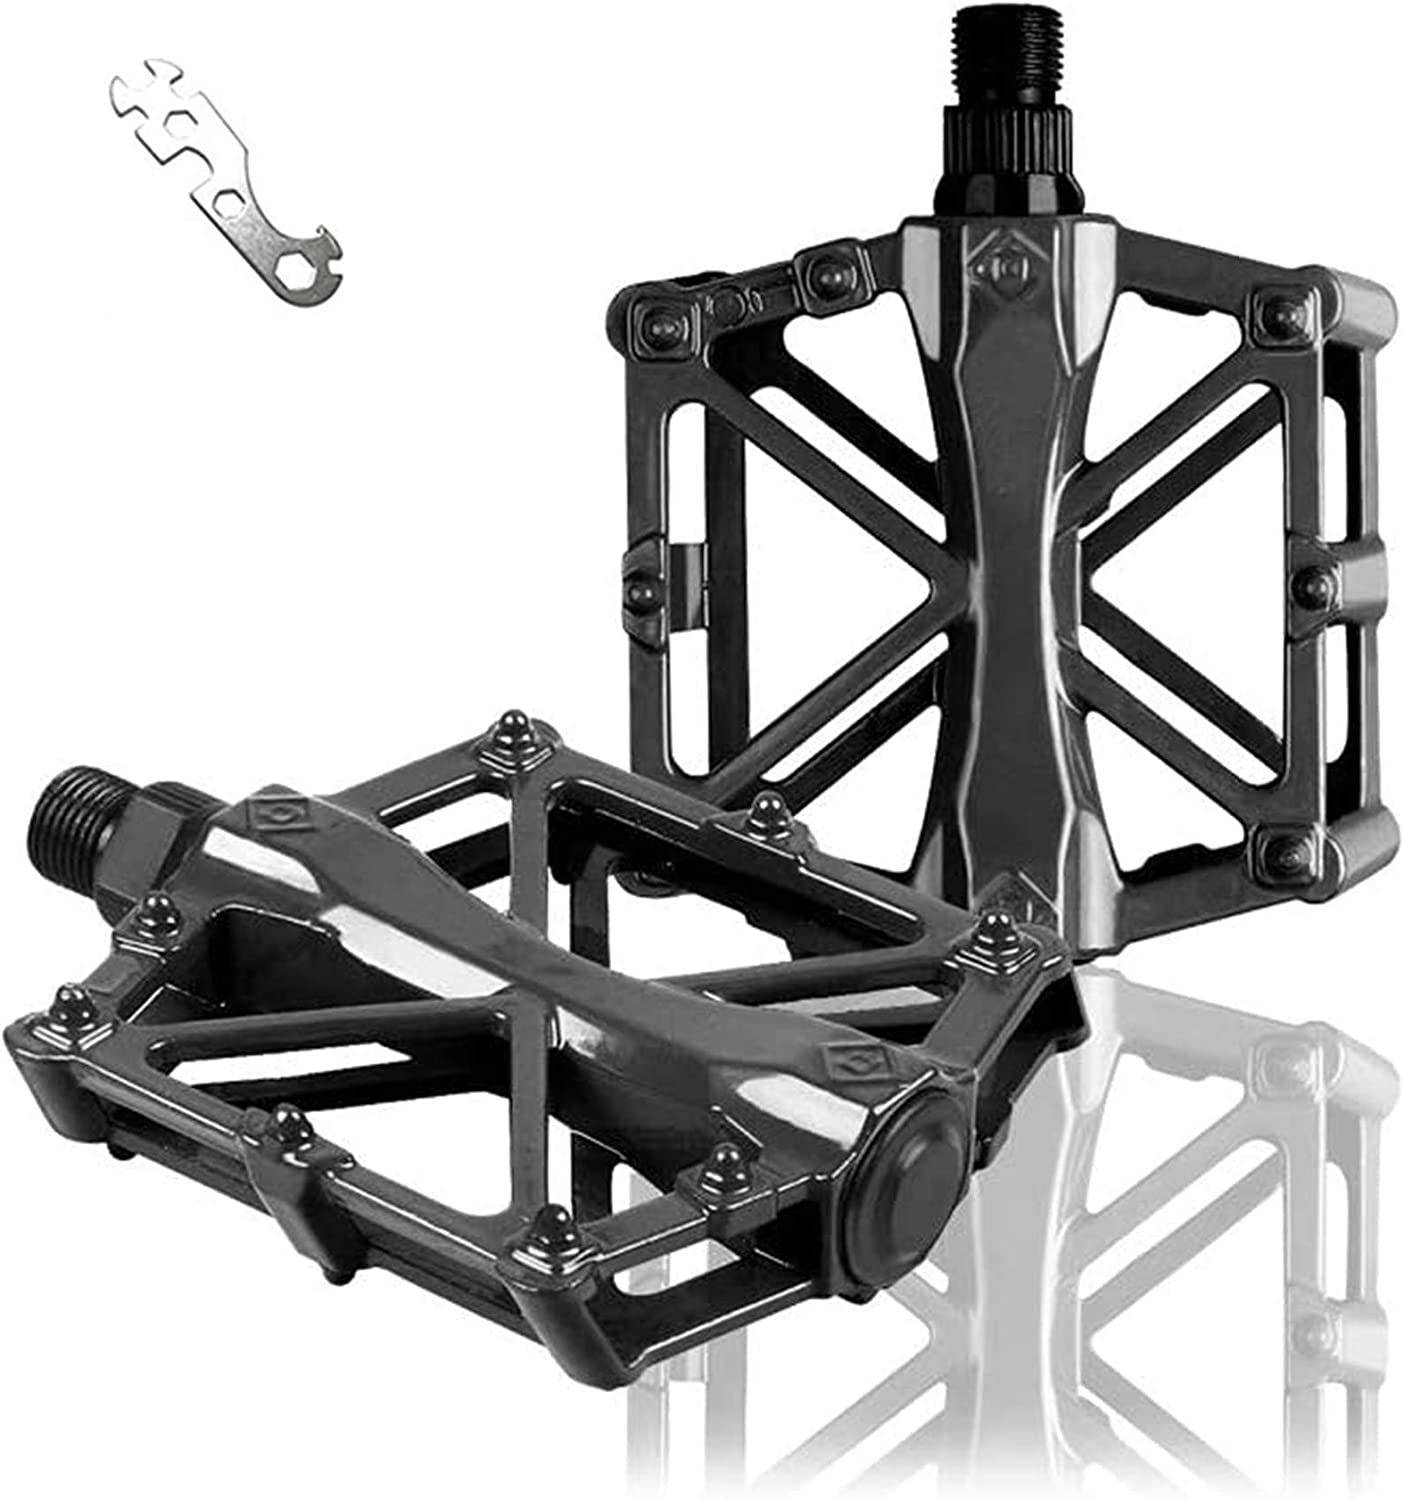 Haoliving Mountain Bike Pedals Super-cheap with Wrenches Bicycle Ultra Light Ranking TOP8